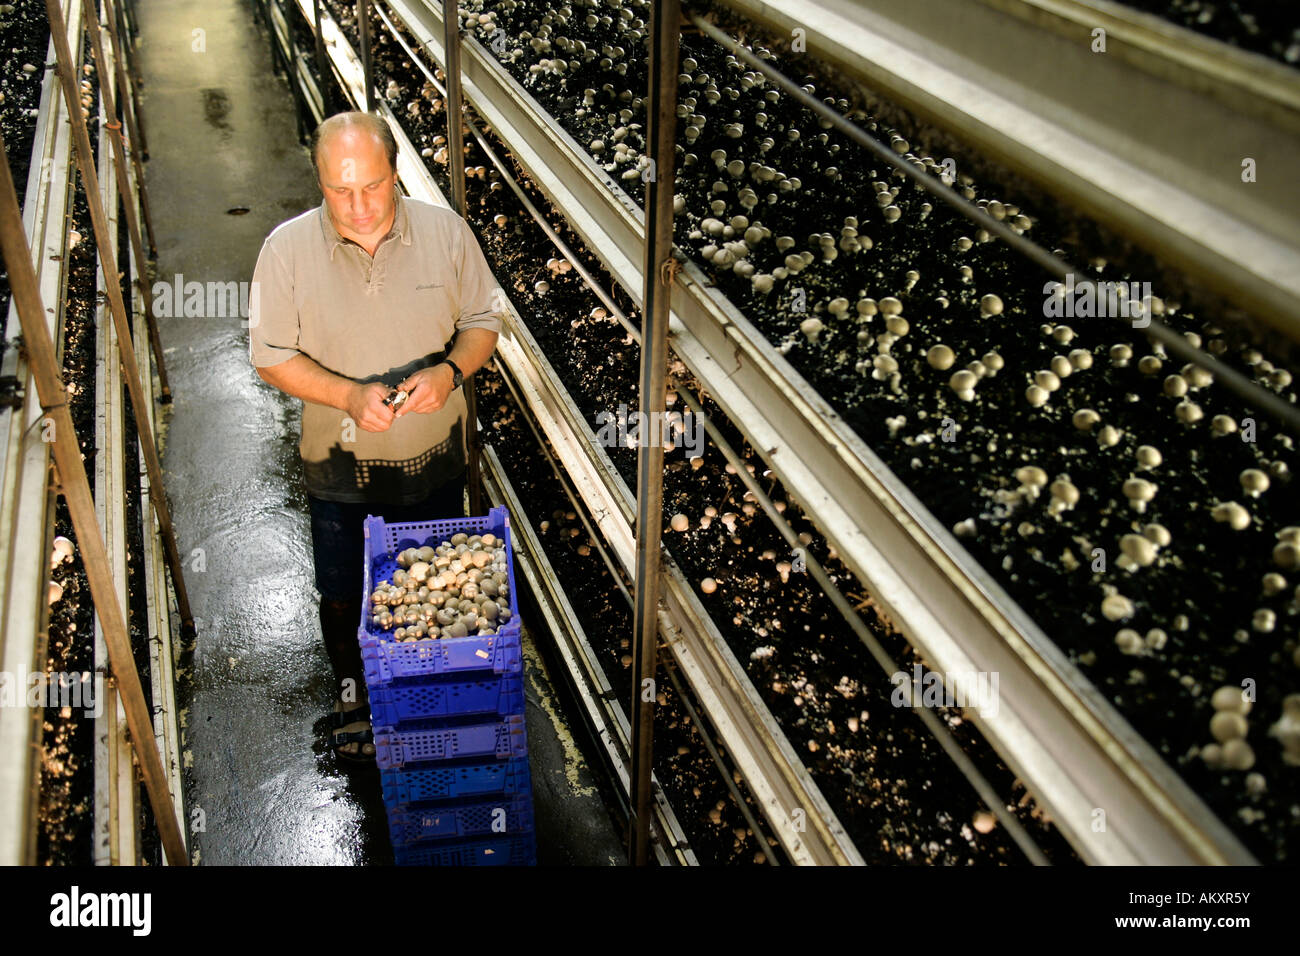 Champignon breeding in an agricultural enterprise, Hesse, Germany. - Stock Image